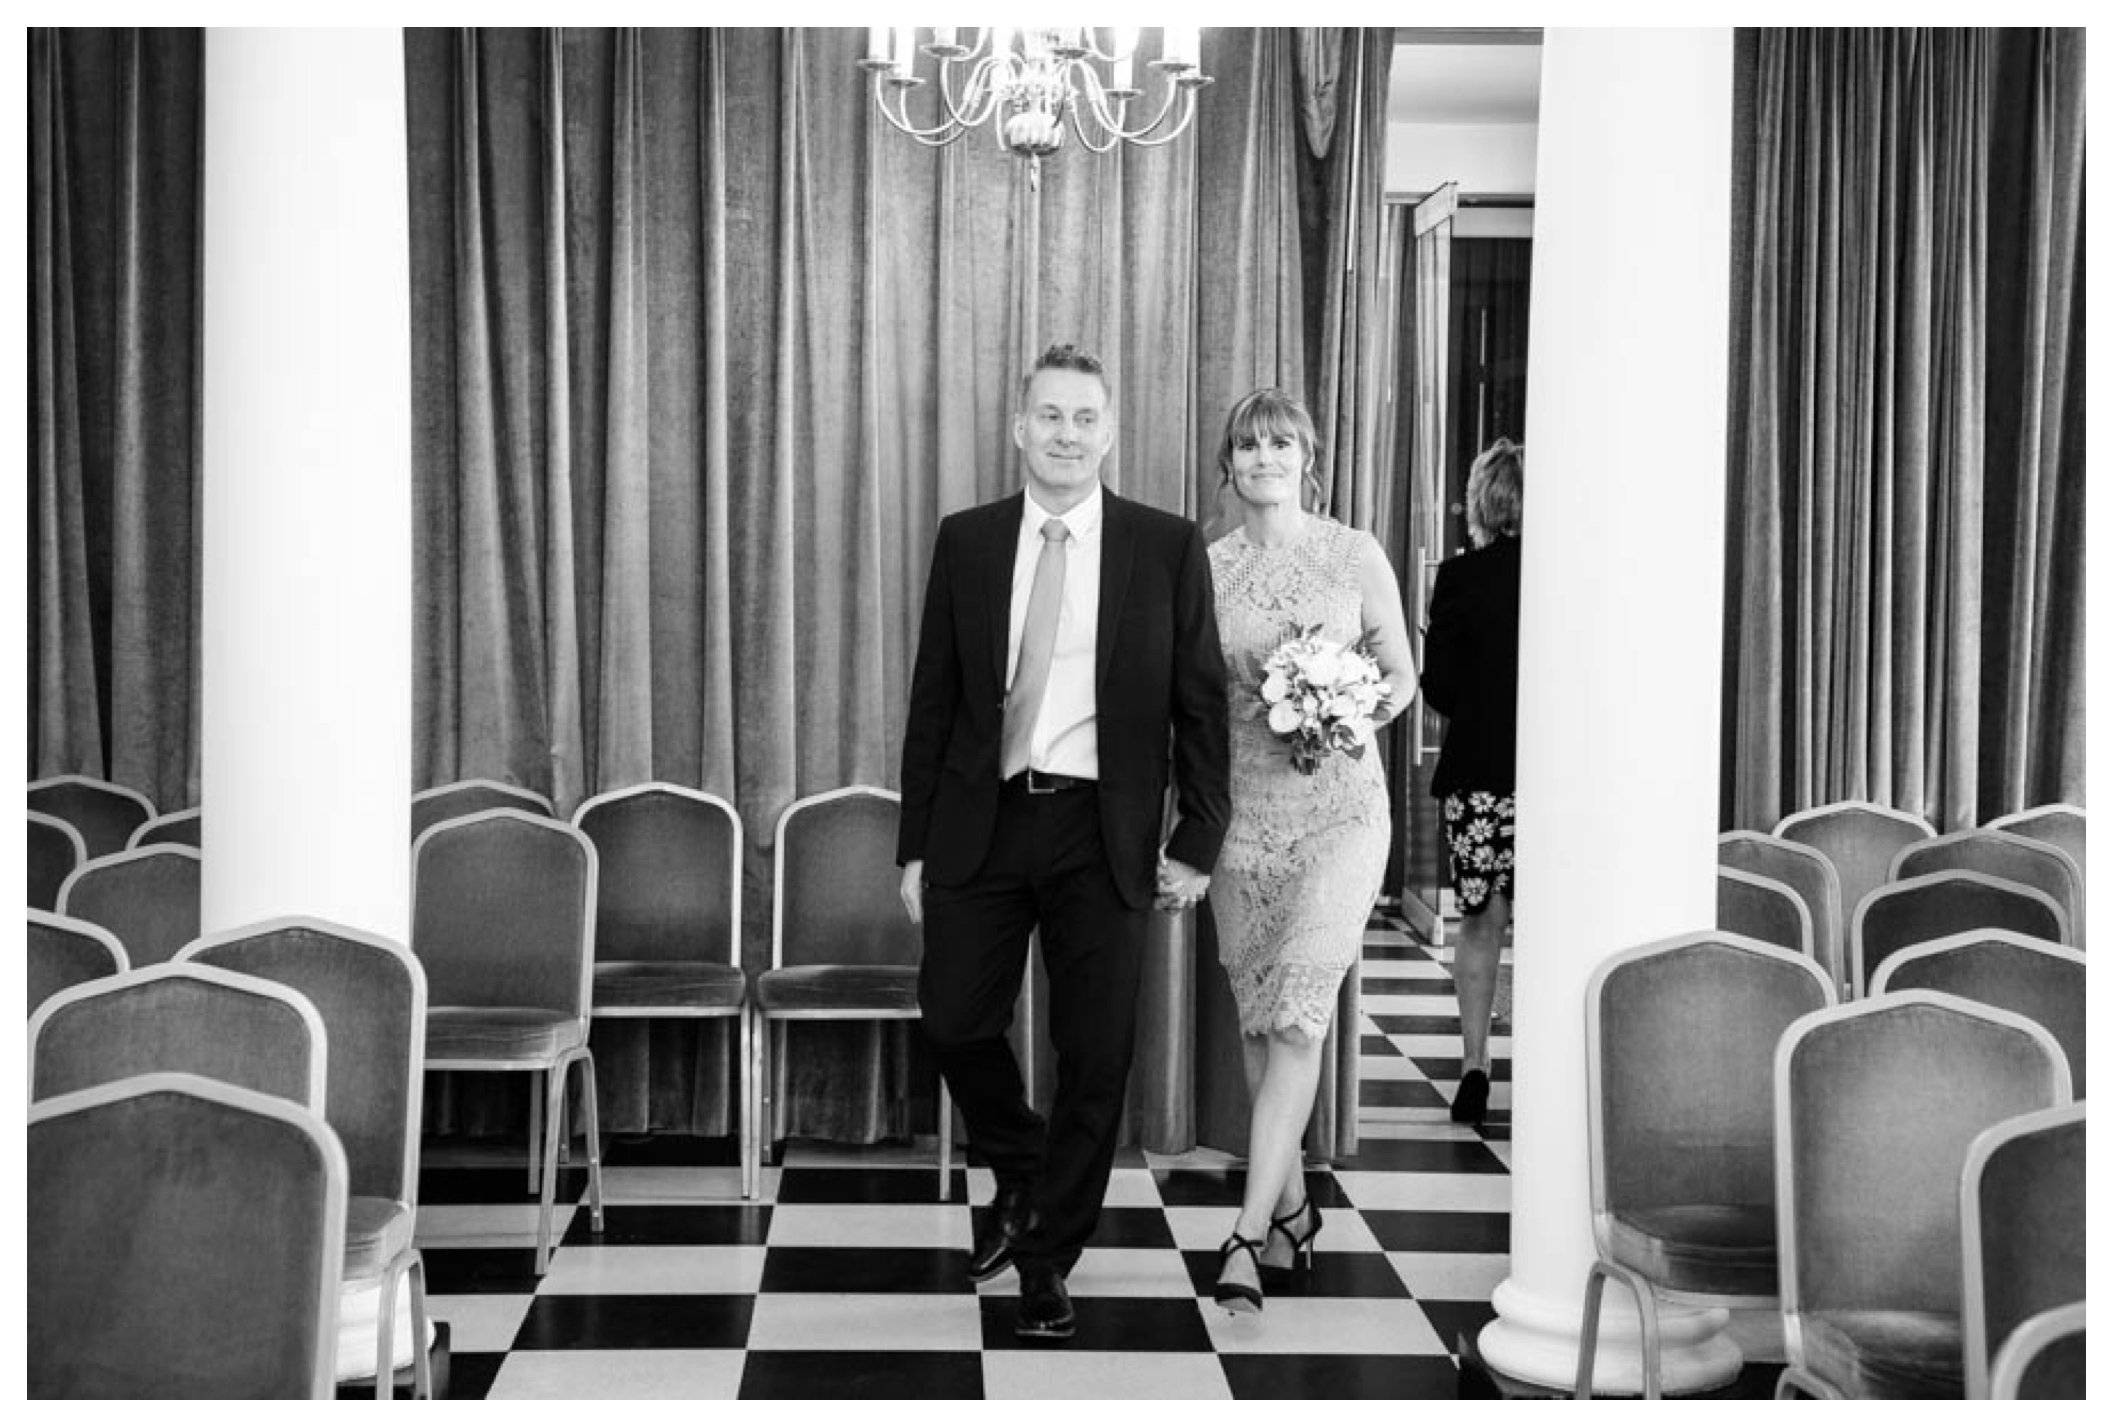 black and white photo bride and groom walking into register office together